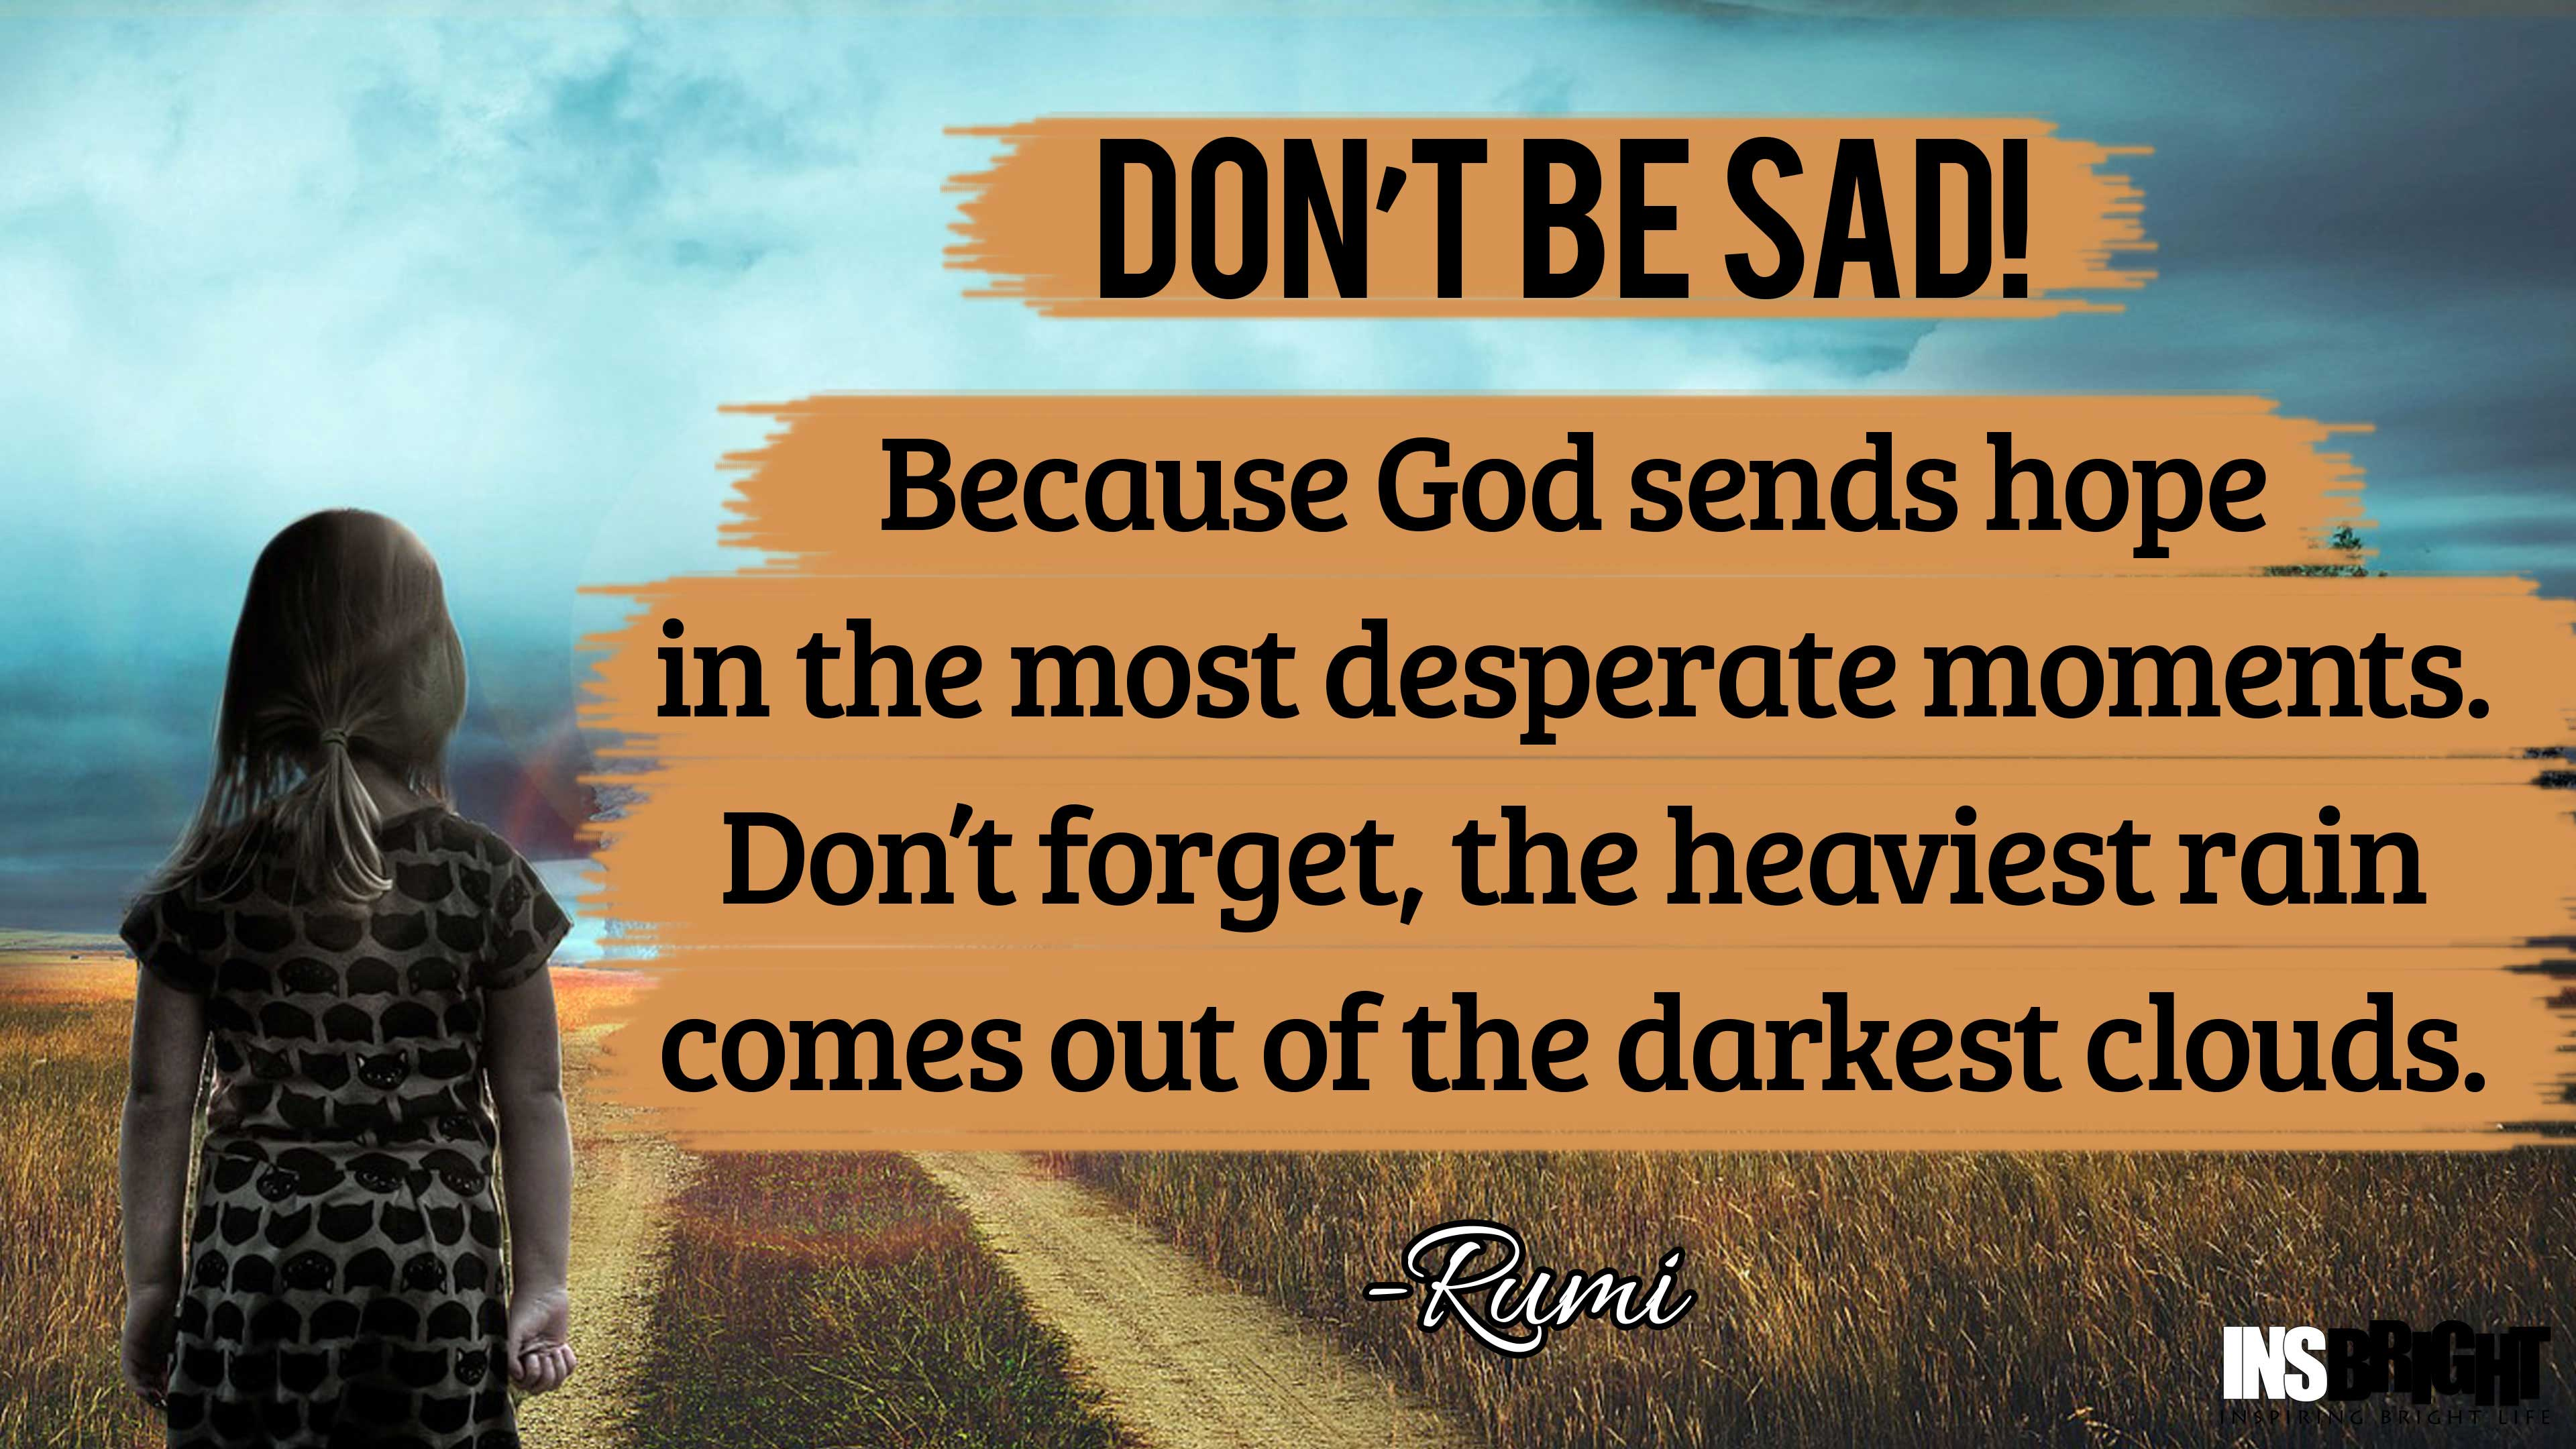 Sad Quote 14 Inspirational Don't Be Sad Quotes Images  Insbright